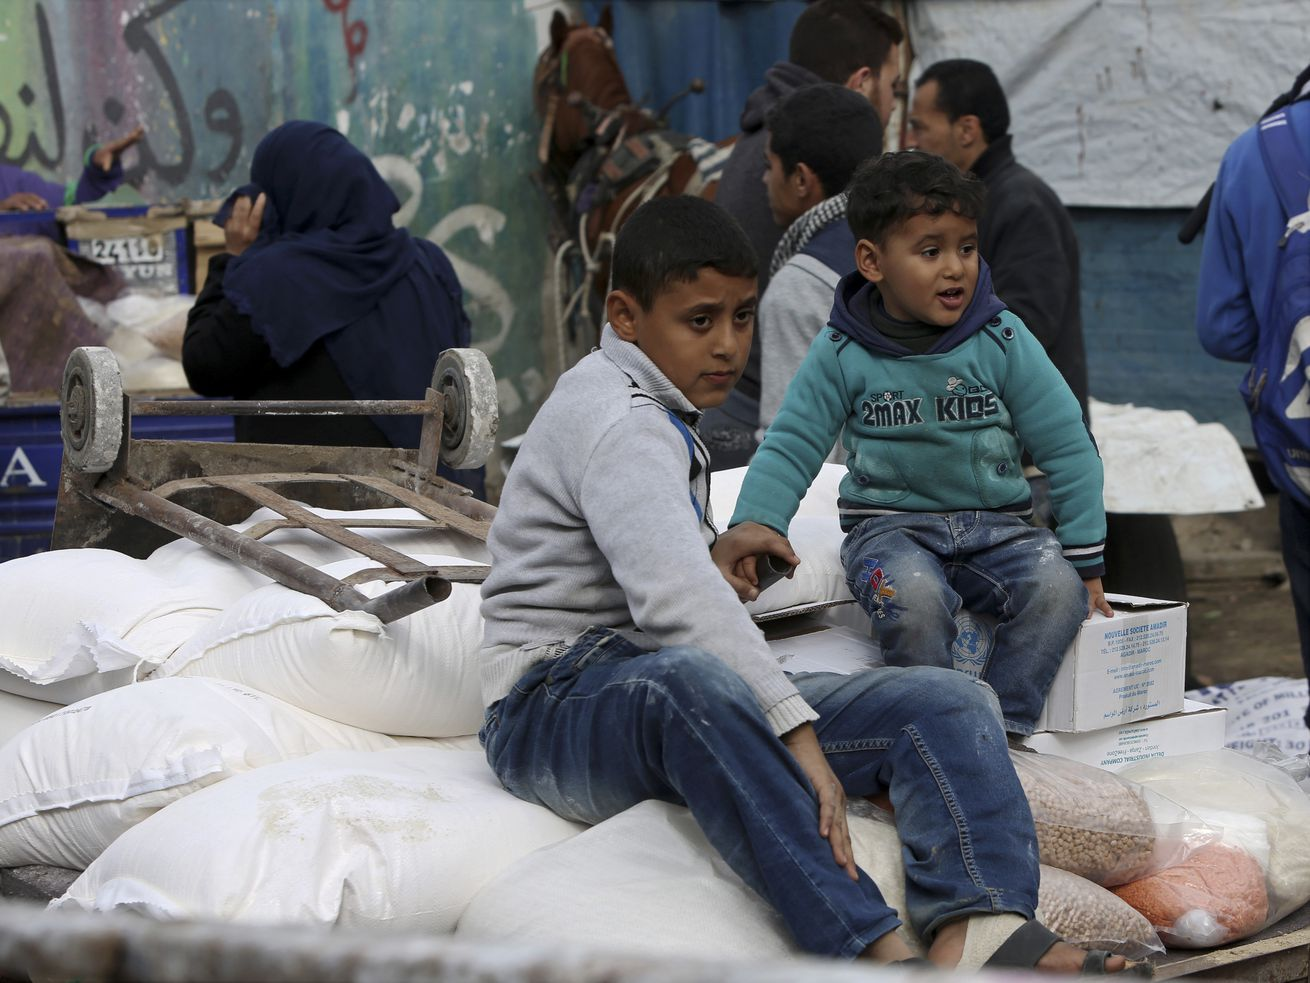 Palestinian refugees sit on sacks of flour that their family received from a UN food distribution center in the Nusseirat refugee camp, central Gaza Strip, Wednesday, January 17, 2018.